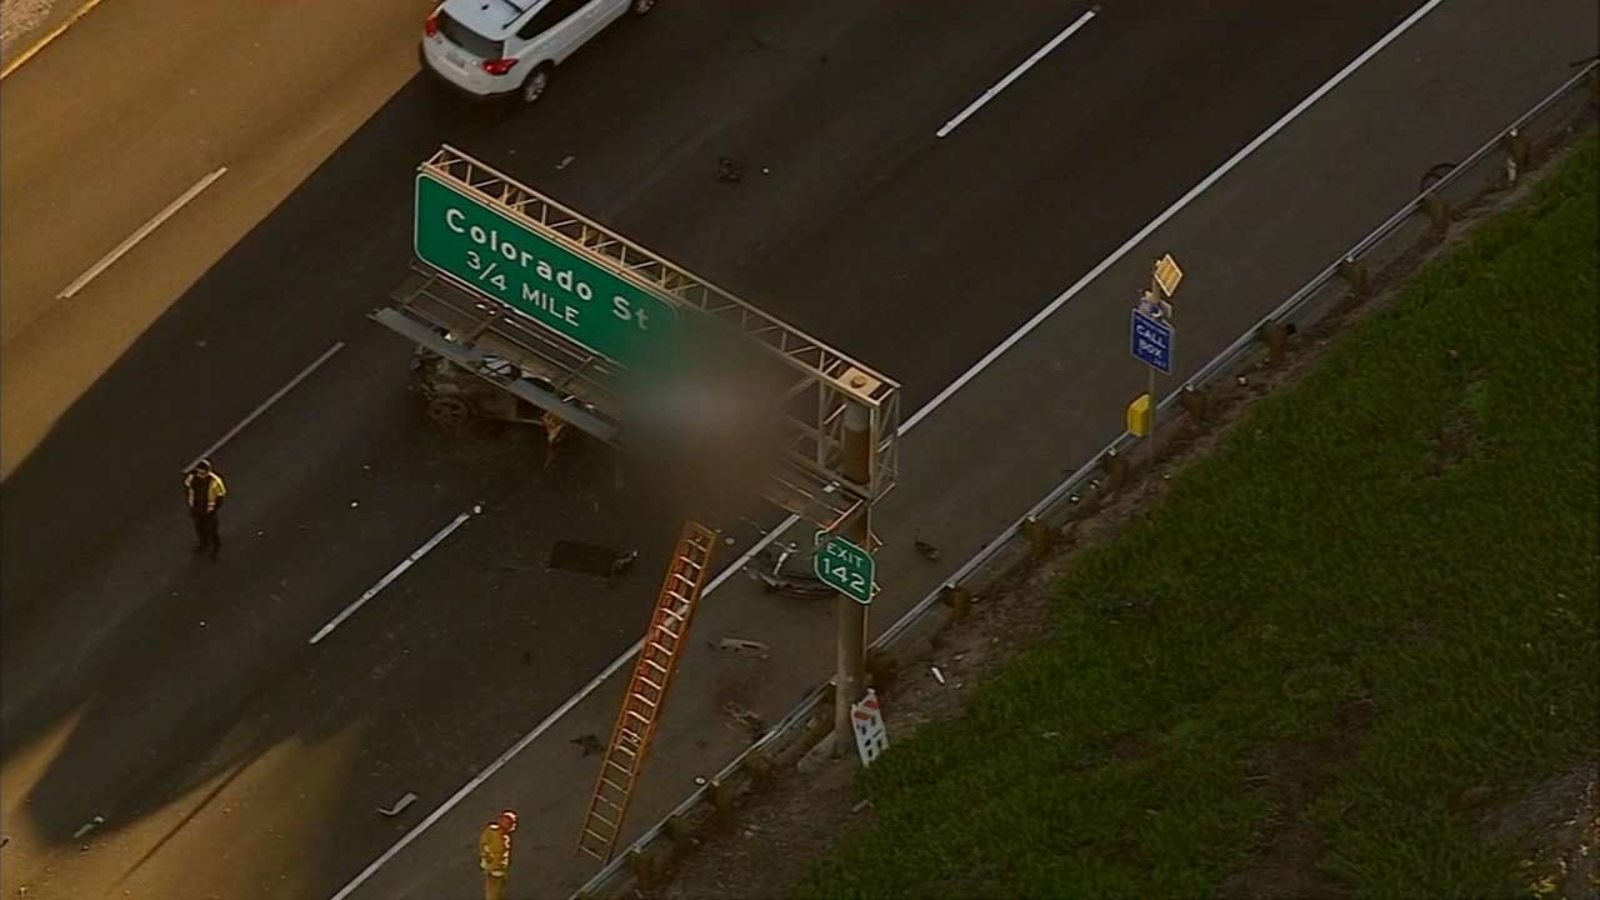 Victim ejected onto 5 Fwy sign after crash near Griffith Park